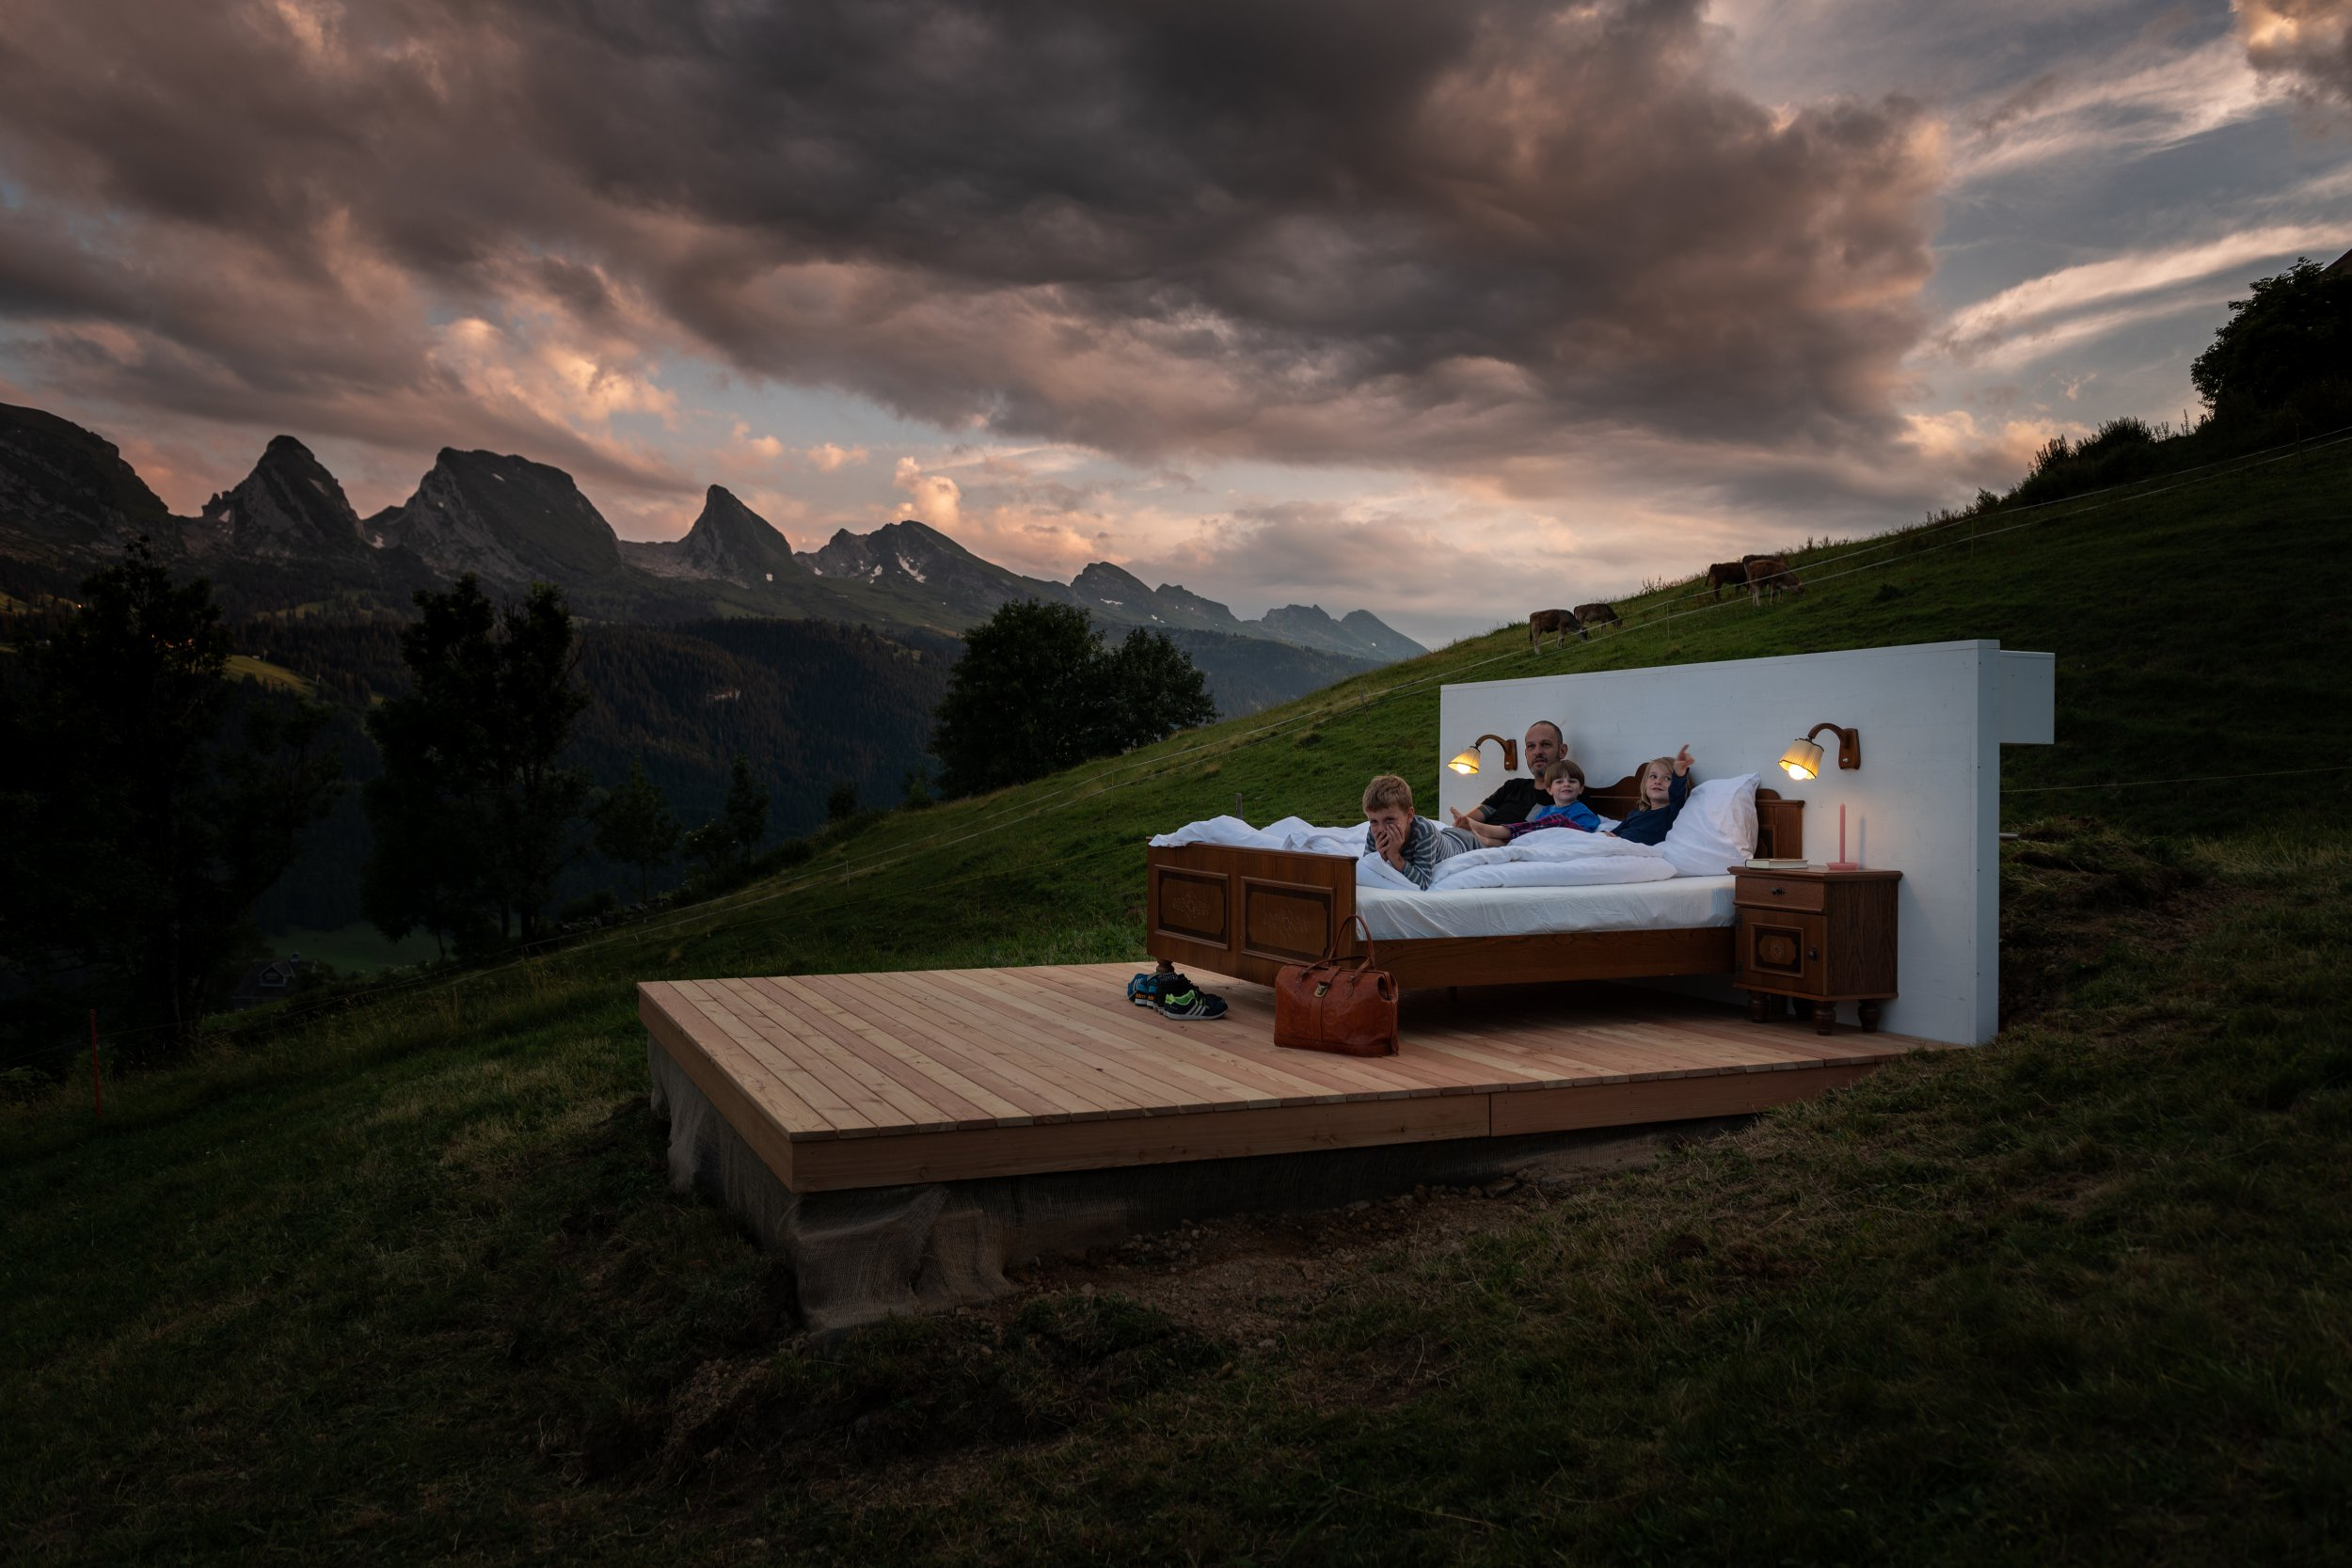 Could you sleep in a hotel that has no walls or roof? Zero Real Estate is a wall and window-free bed project set on a glorious mountainside spectacularly secluded in the Swiss Alps created by Swiss concept artists Frank and Patrik Riklin and their partner Daniel Charbonnier. Located in the alpine foreland of Wildhaus, Toggenburg the three ???hotel suites' allow you to lie under the sky surrounded with spectacular views of the Safien Valley. The experience begins with an easy check-in at the nearby Hotel Alpenrose. From there, your personal butler will escort you directly to your secluded Swiss paradise. The Burst Suite takes in the beauty of the S??ntis in all its glory, set high above the Toggenburg valley. Discover the Schwendi Suite above the sparkling Lake Schwendisee, with the distant chime of cowbells as your soundtrack. Finally, the Stump Suite lies under a canopy of ancient trees and birdsong, set conveniently close to the hotel sauna and spa. Completely unencumbered by windows and walls, you're free to admire your surroundings in all their captivating glory. Drift off amongst the emerging stars overhead... and with all that fresh mountain air, a sound night's sleep is all but guaranteed. When you wake, you'll find a tasty breakfast basket delivered directly to your bed - from which you may never, ever want to emerge again. The hotel suites under the stars are available through September 1st 2018 via https://toggenburg.org/de/zerorealestate.html but be aware that the hotel currently has a waiting list of 4,500 people! When: 01 Aug 2018 Credit: Zero Real Estate/Cover Images **All usages and enquiries, please contact info@cover-images.com - +44 (0)20 3397 3000EDITORIAL USE ONLY. MATERIALS ONLY TO BE USED IN CONJUNCTION WITH EDITORIAL STORY. COVER IMAGES DOES NOT CLAIM ANY OWNERSHIP OF THE MATERIALS. IMAGE/VIDEO COPYRIGHT REMAINS WITH THE PHOTOGRAPHER AND/OR SUPPLIER.**